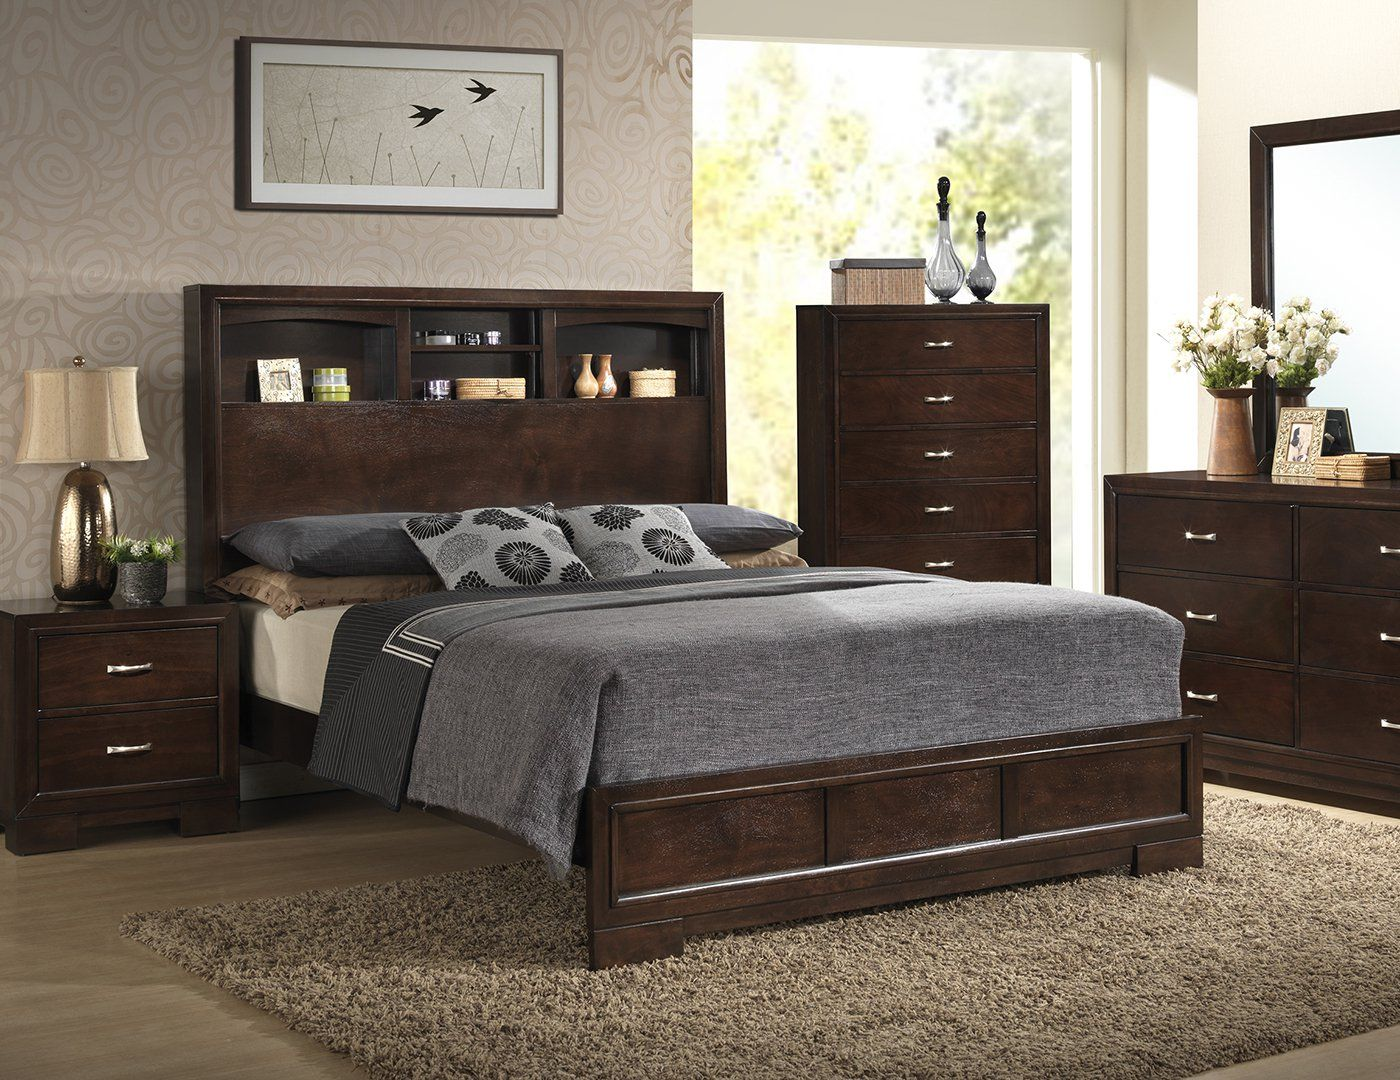 Harper queen bookcase headboard bed steinhafels house - Bedroom furniture bookcase headboard ...